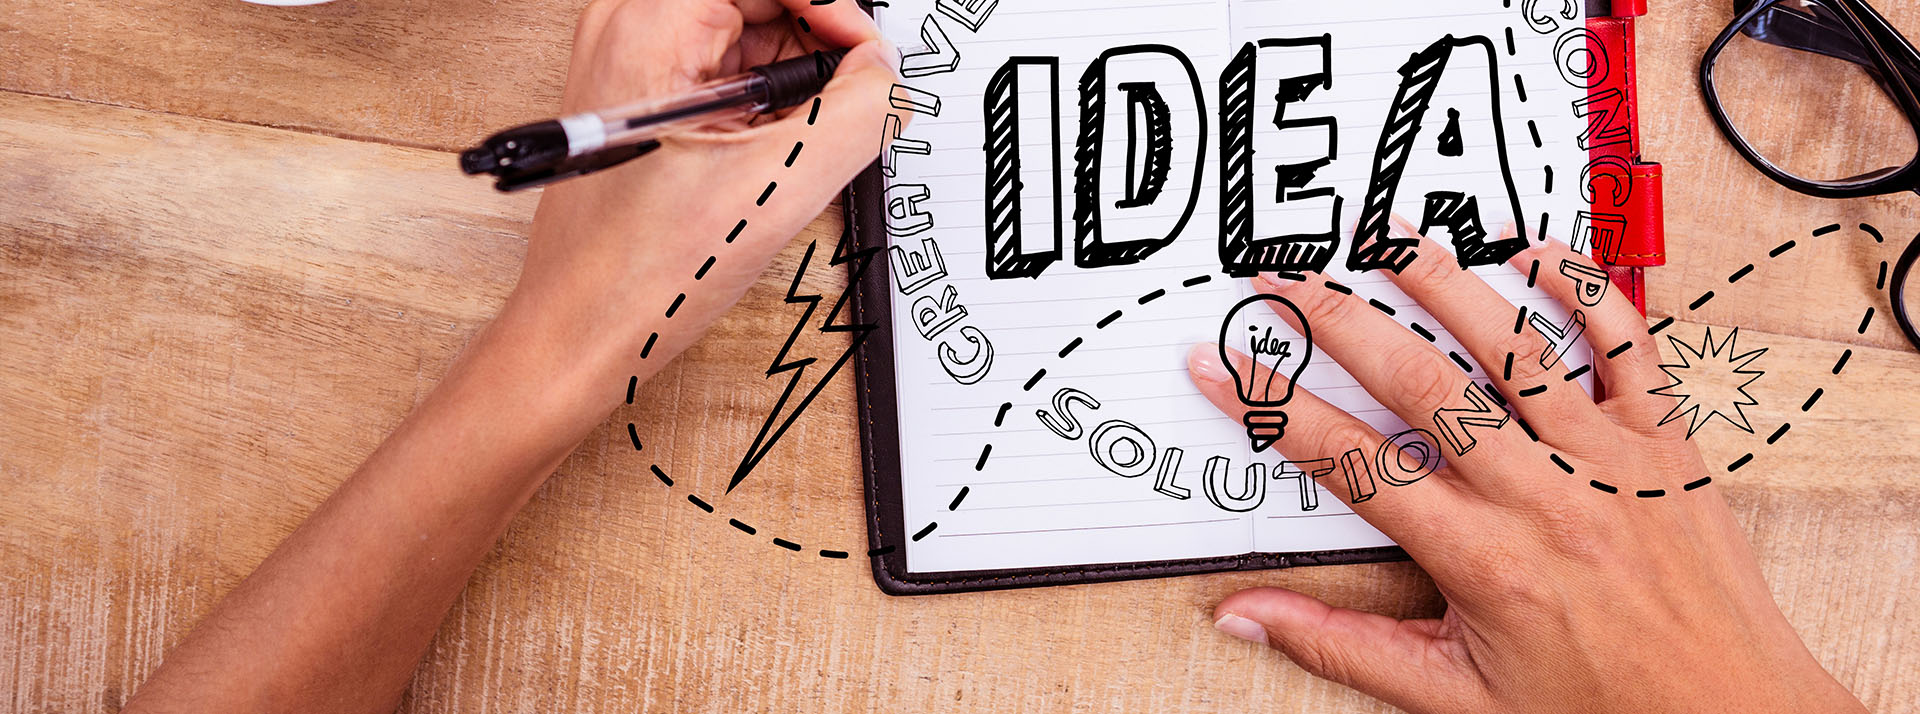 idea-online-marketing